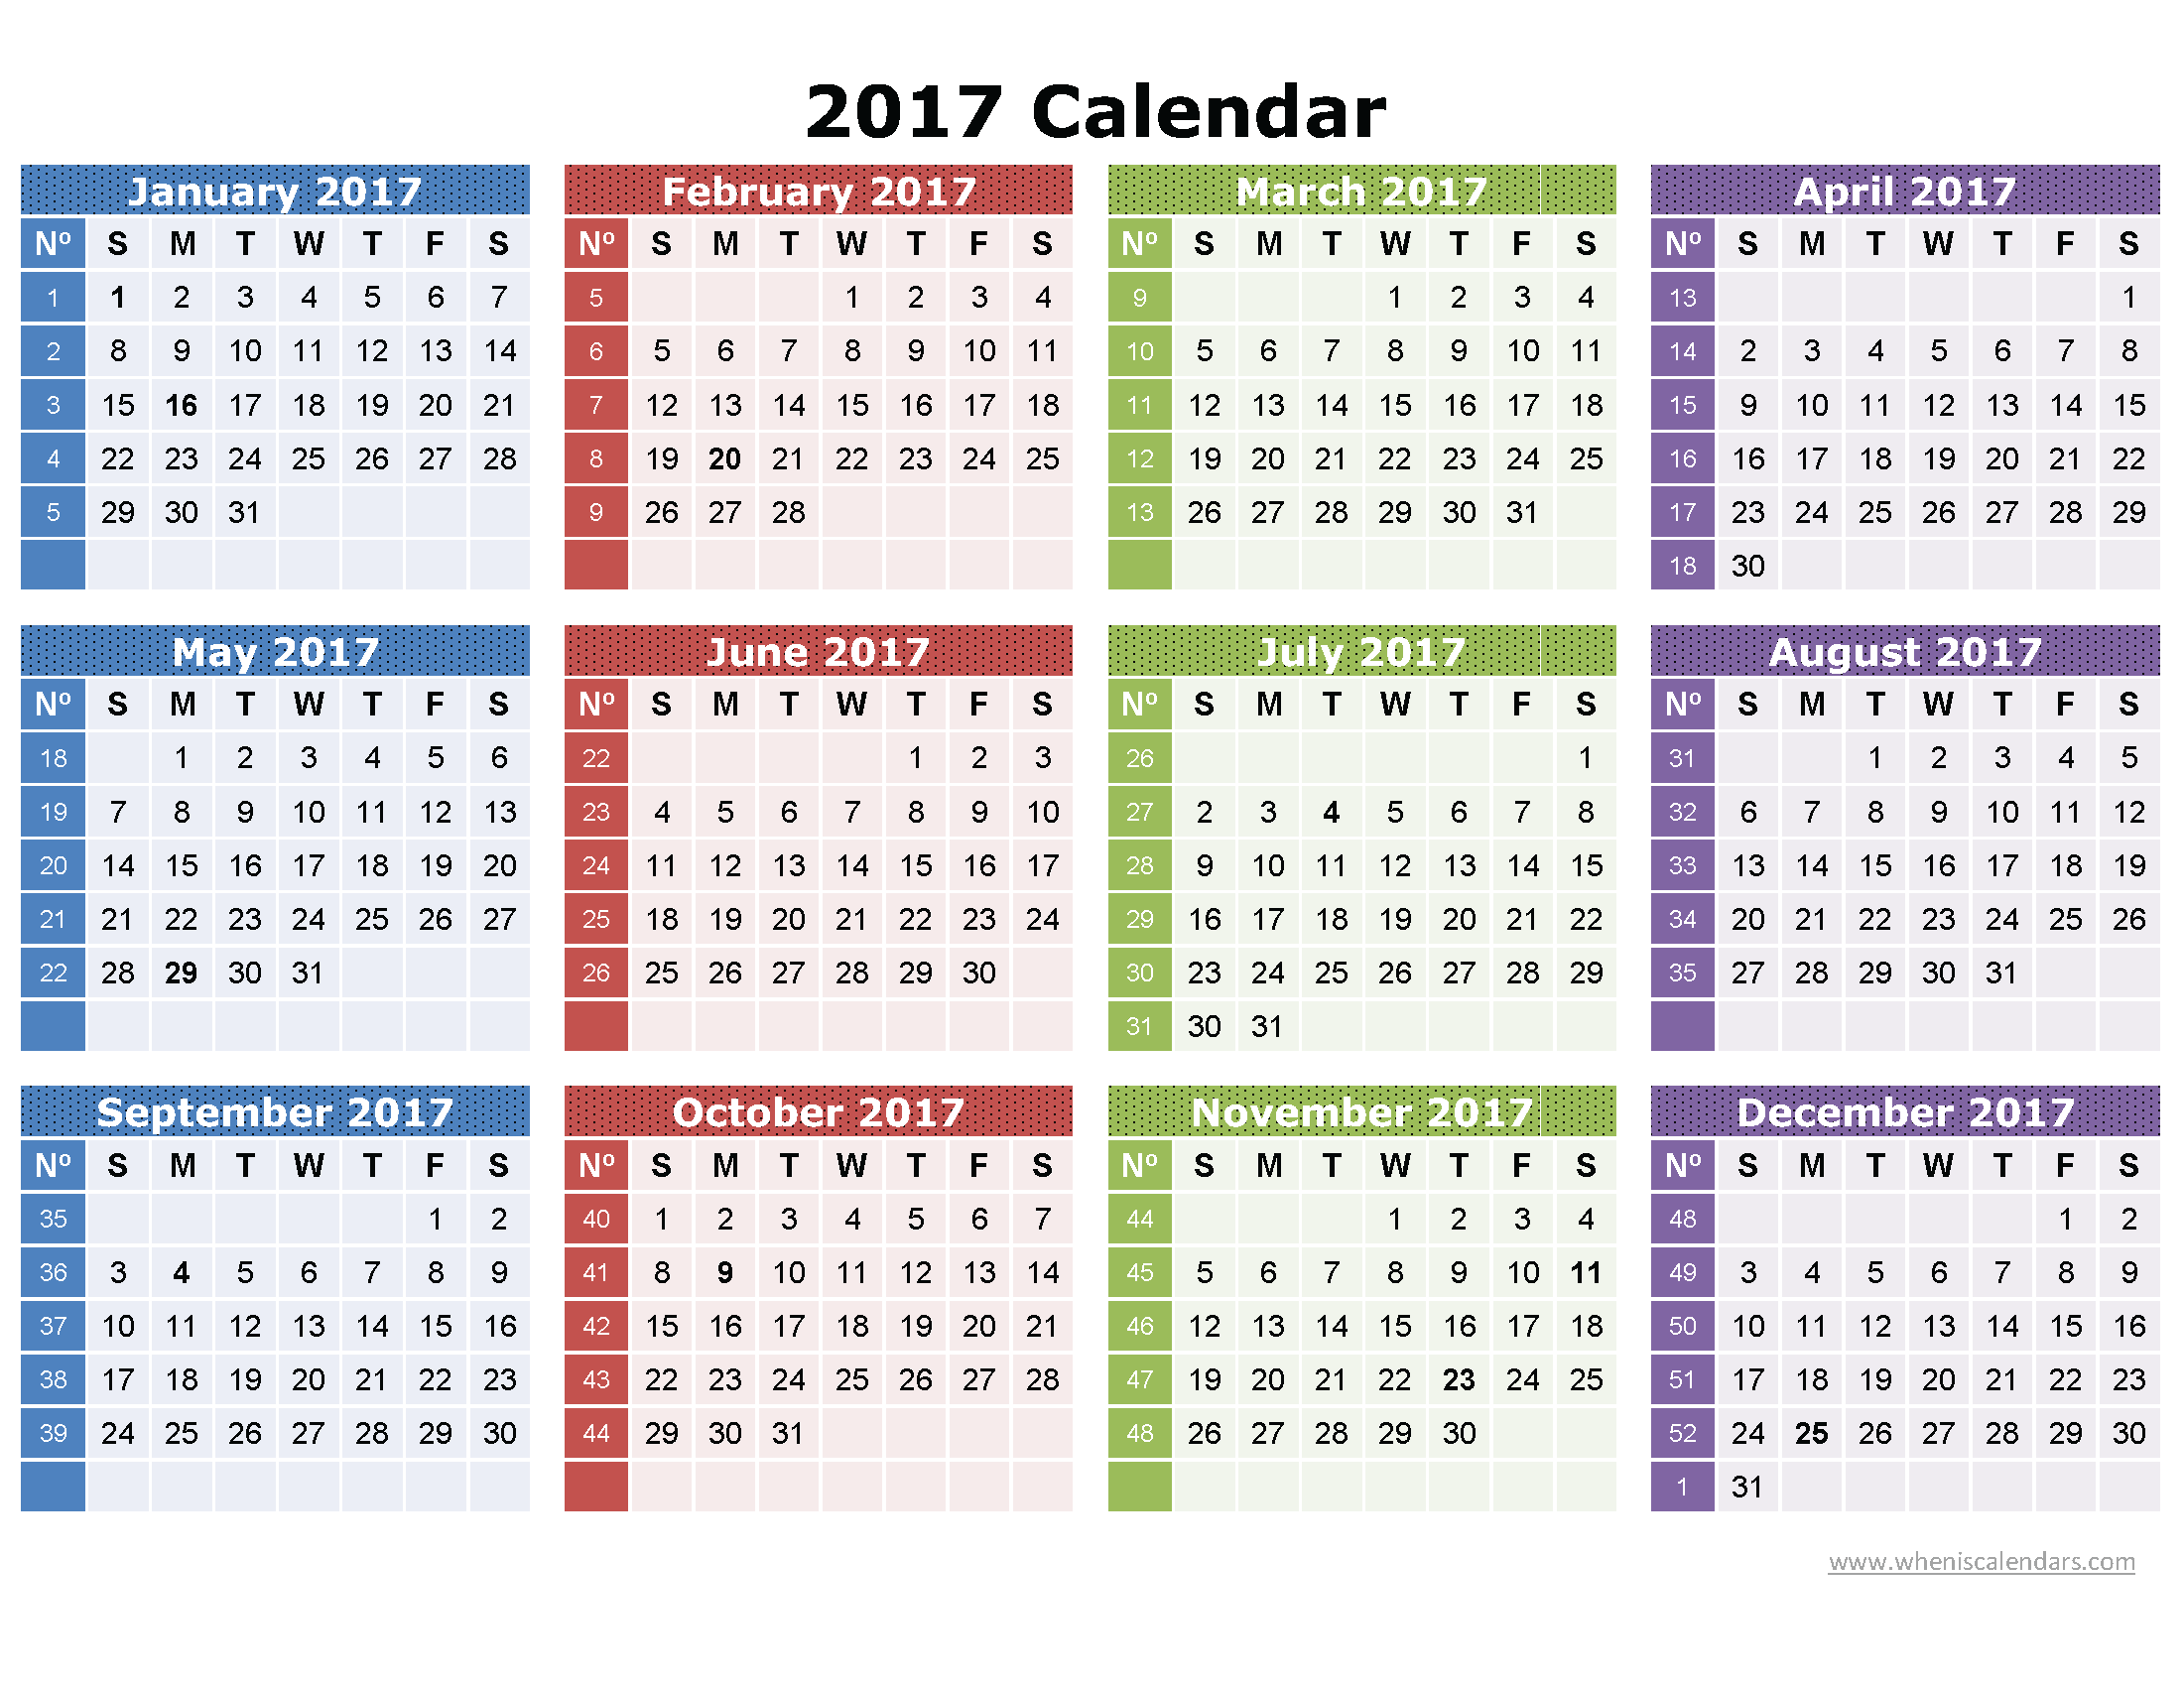 Monthly calendar 2017 pdf free download